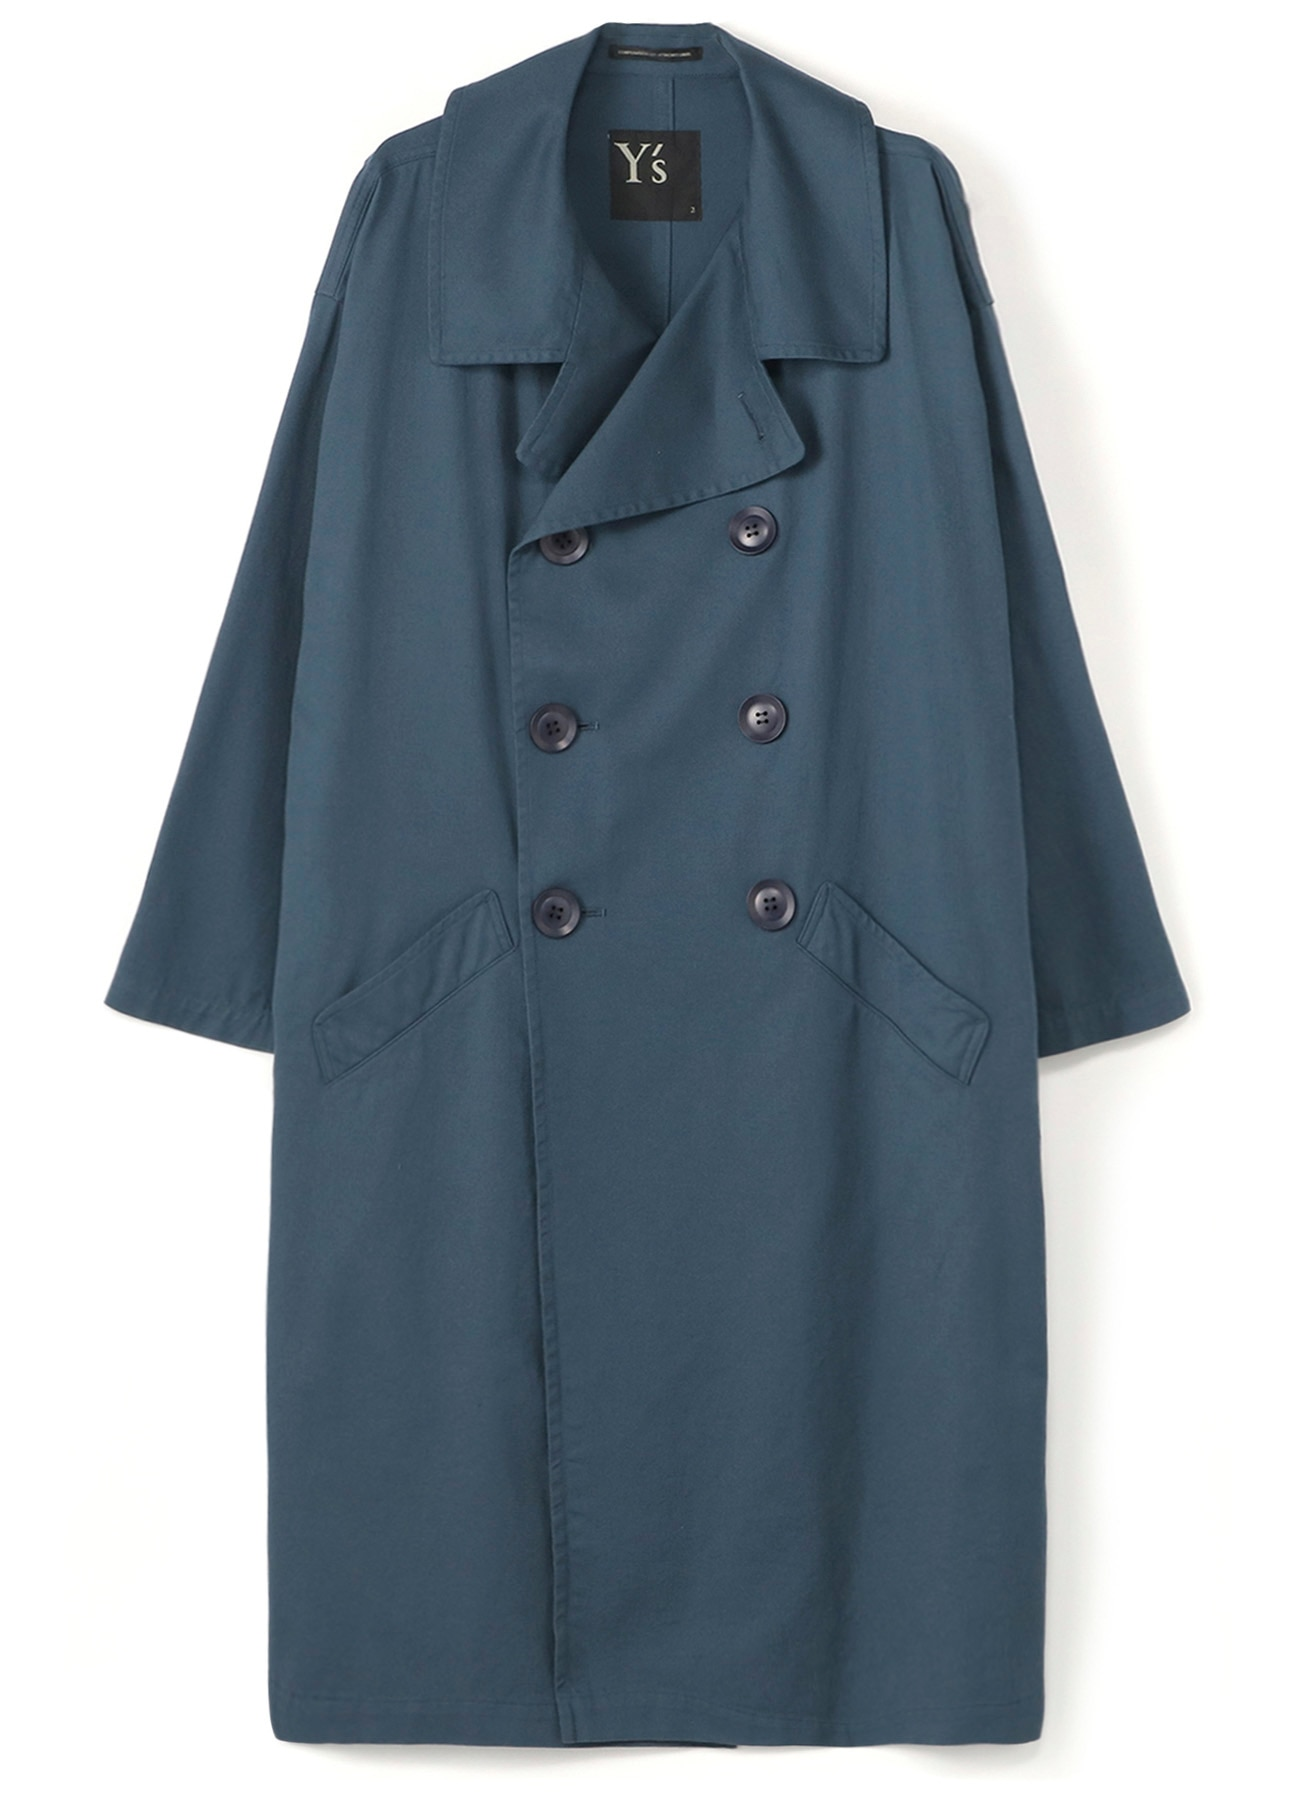 Y's-BORN PRODUCT BIG COAT